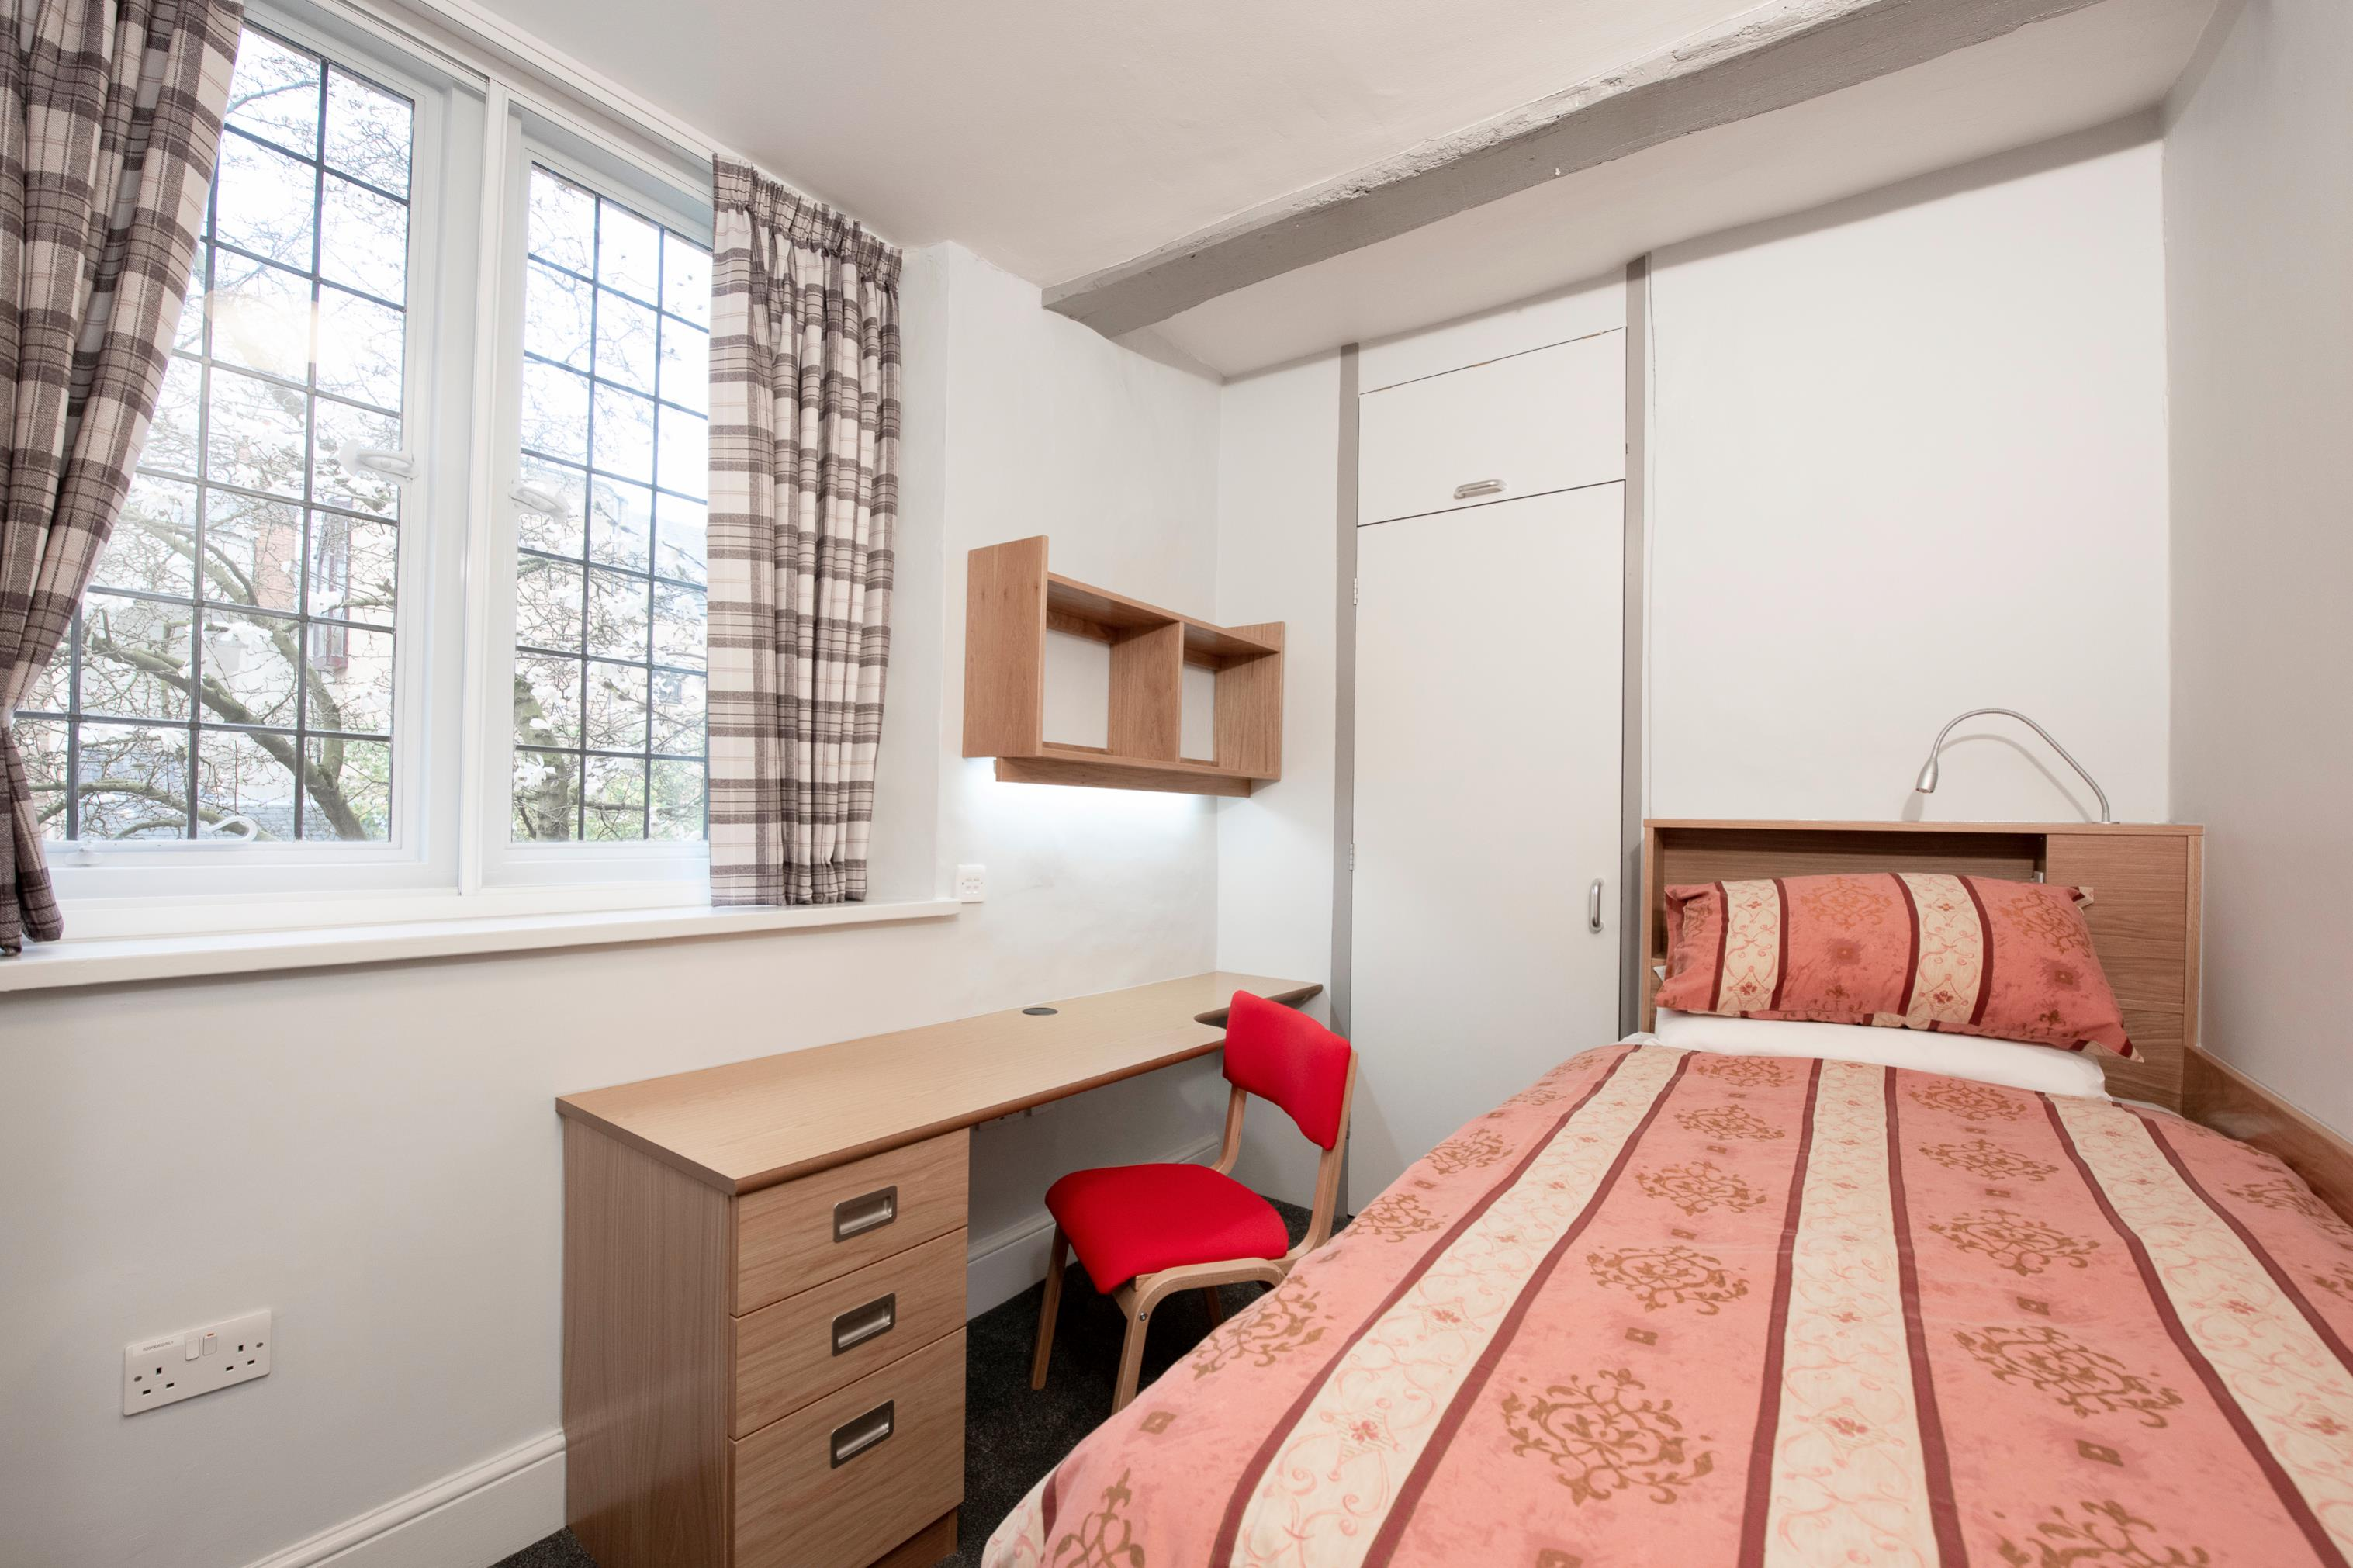 A student bedroom featuring a bed, desk, shelves and leaded widow.